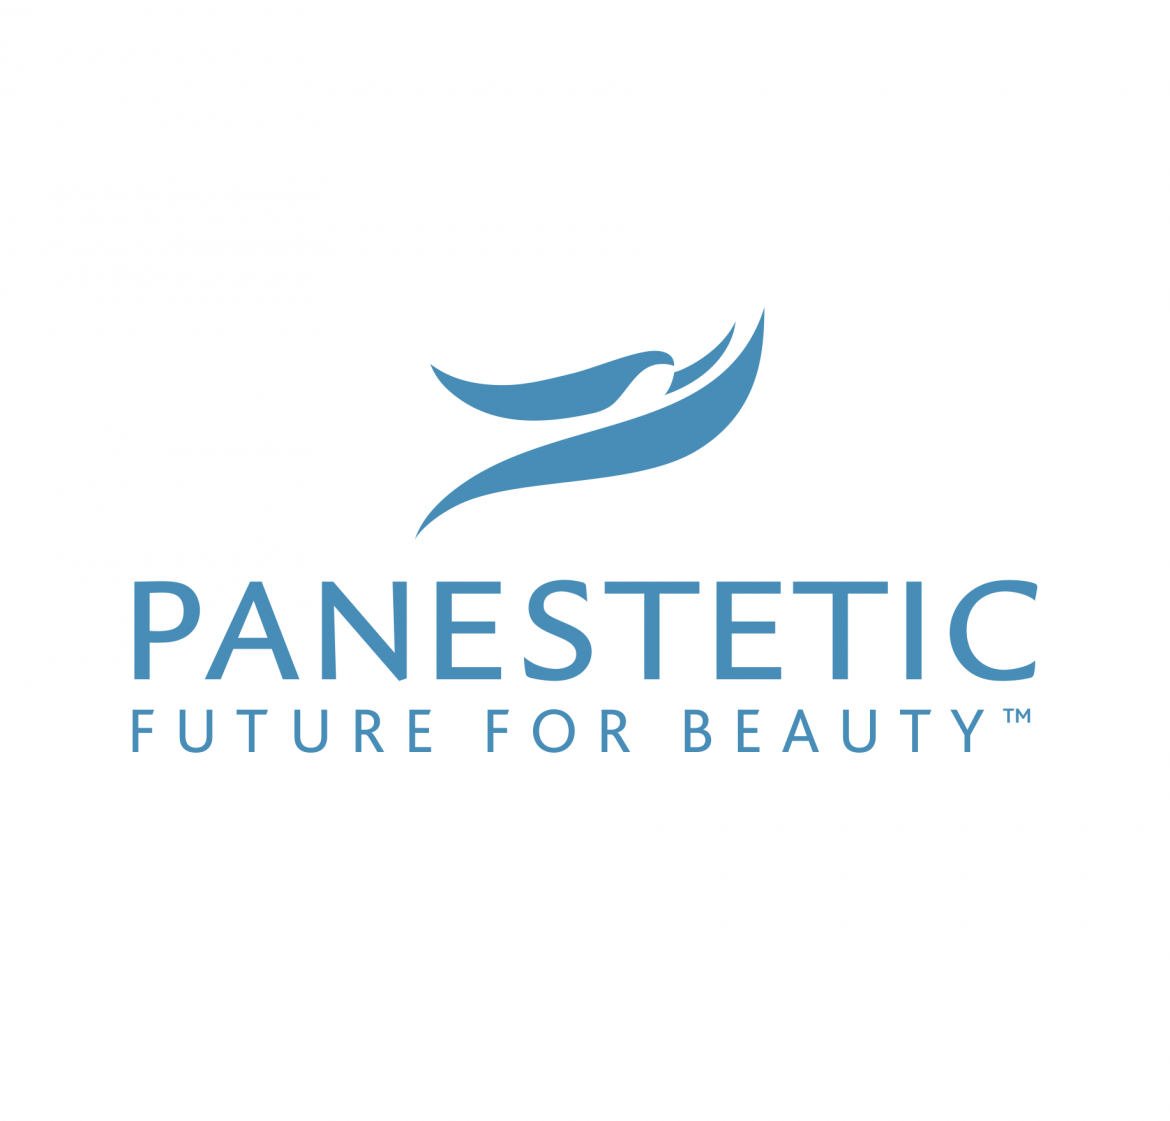 panestetic-logo-nuovo-orizzontale-1-1170x1121.png